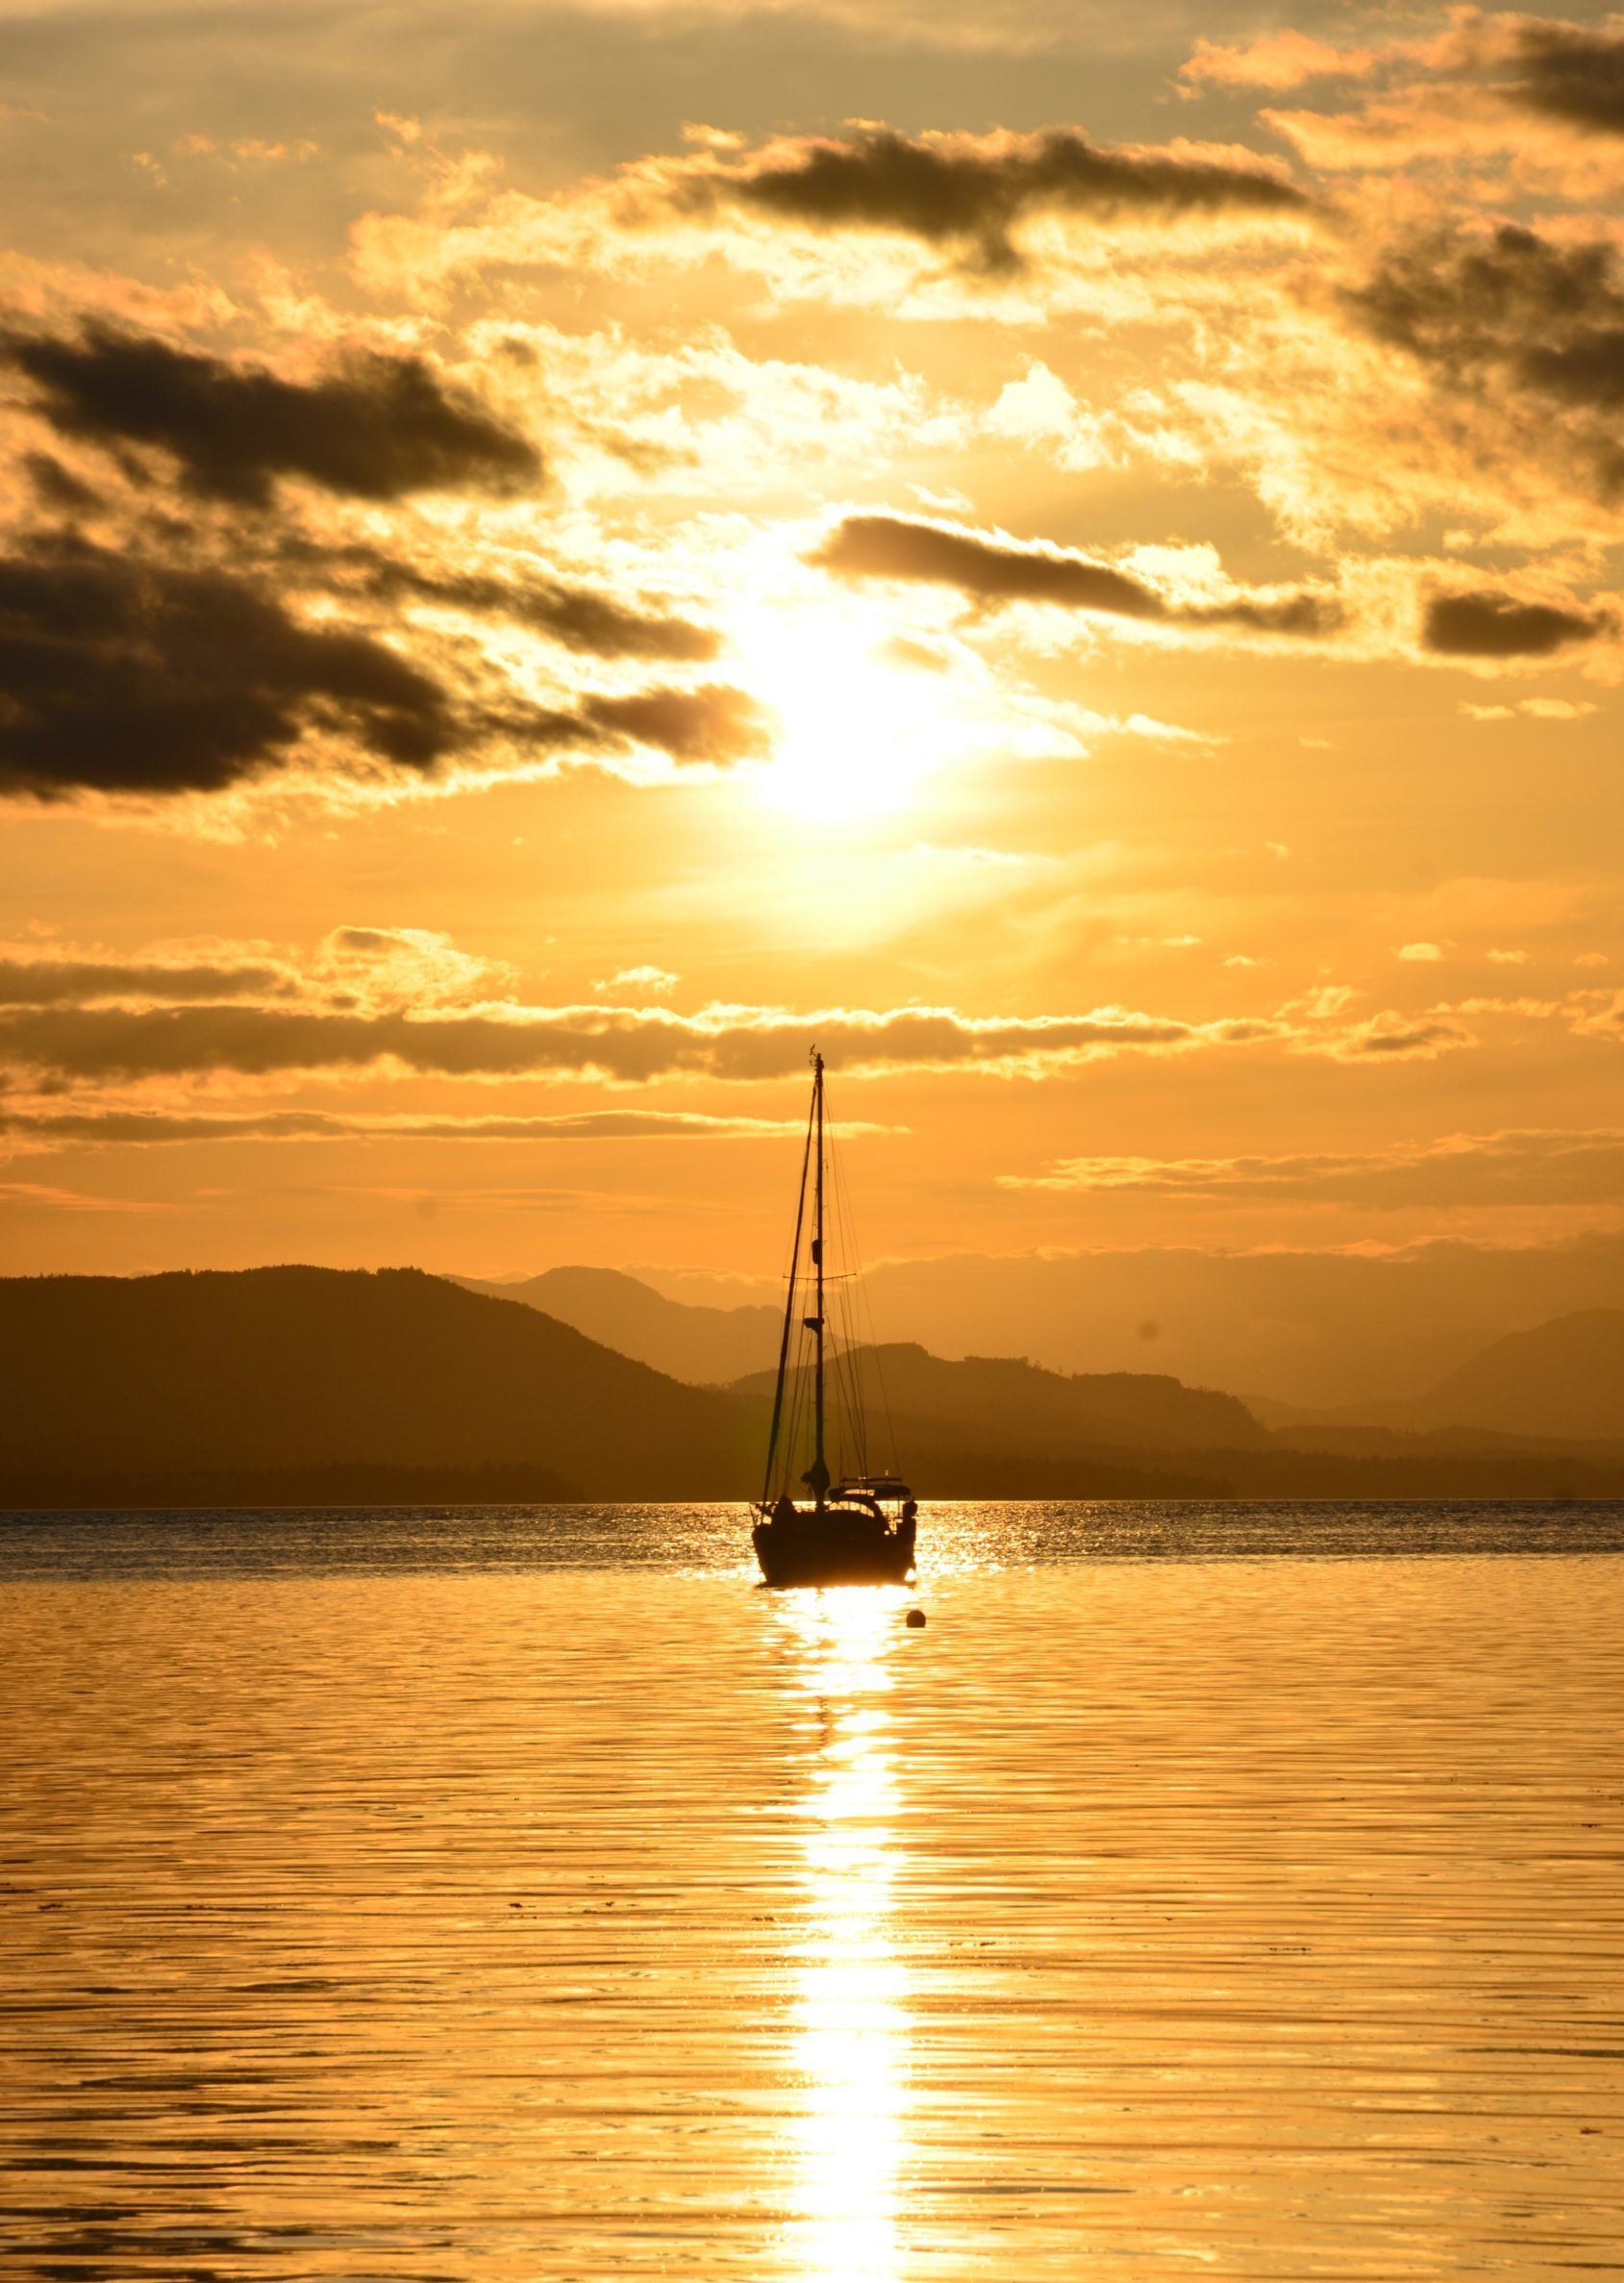 Sailboat in the distance heading towards islands under the golden glow of a sunset